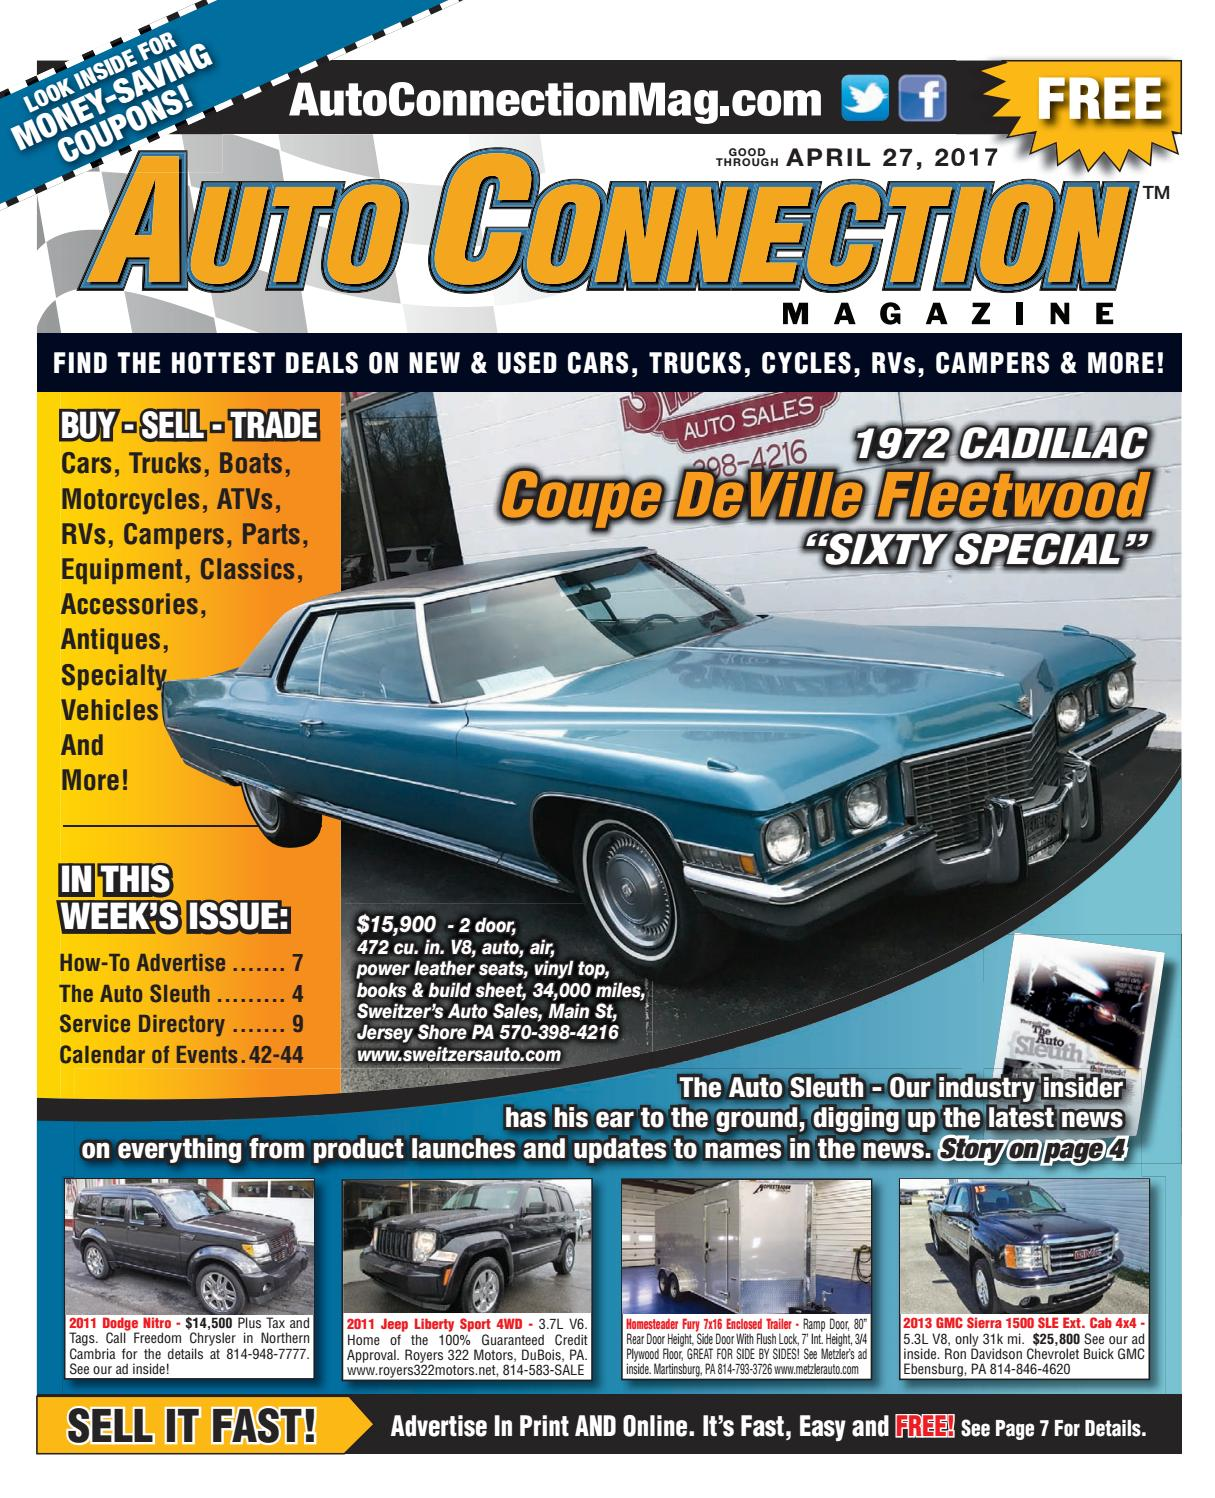 04-27-17 Auto Connection Magazine by Auto Connection Magazine - issuu